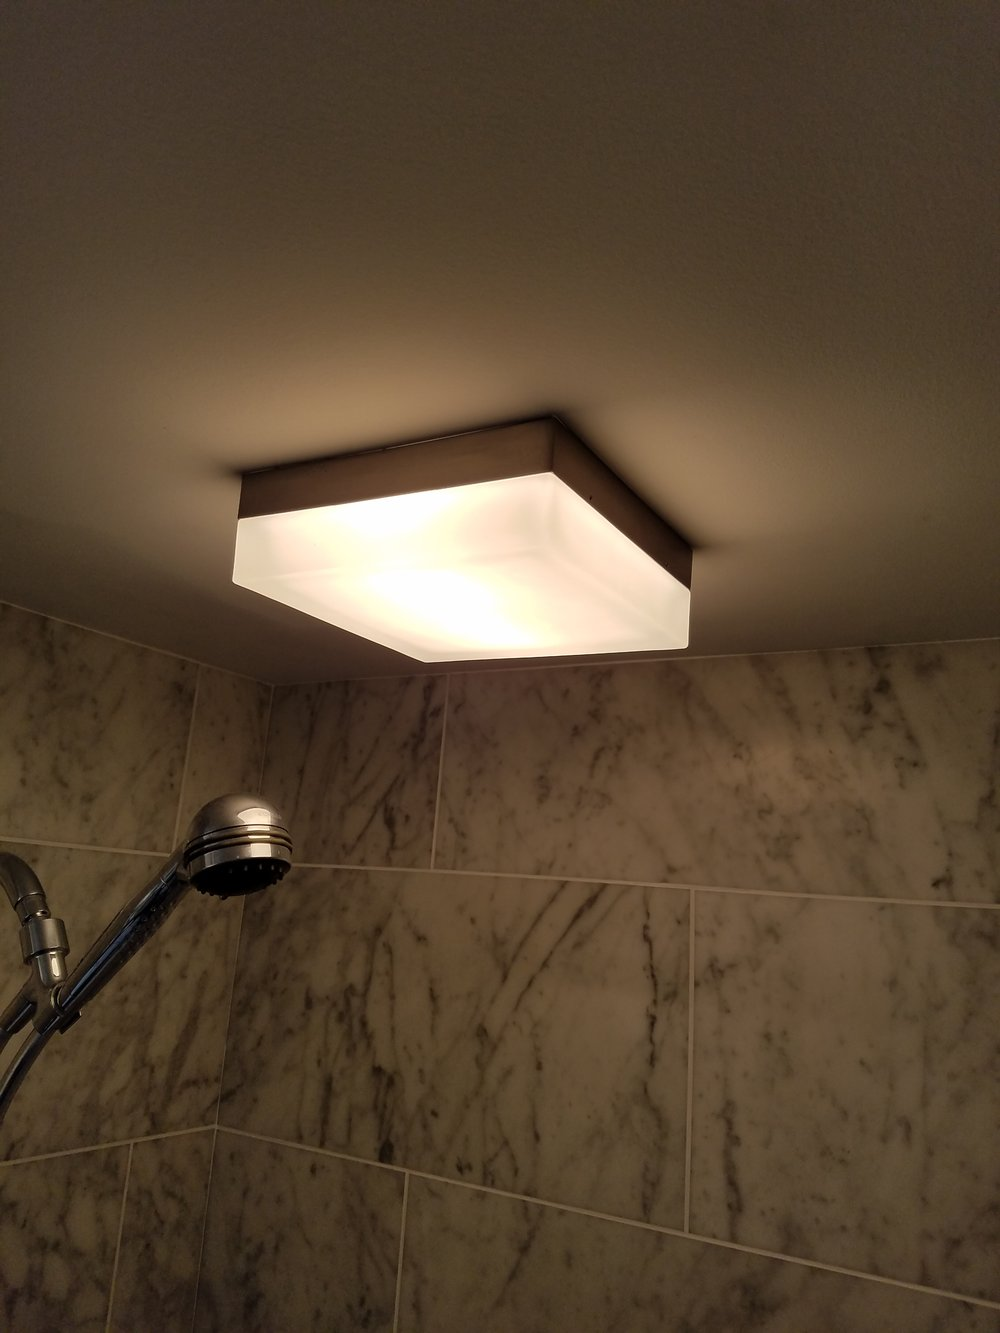 tiled shower and light.jpg